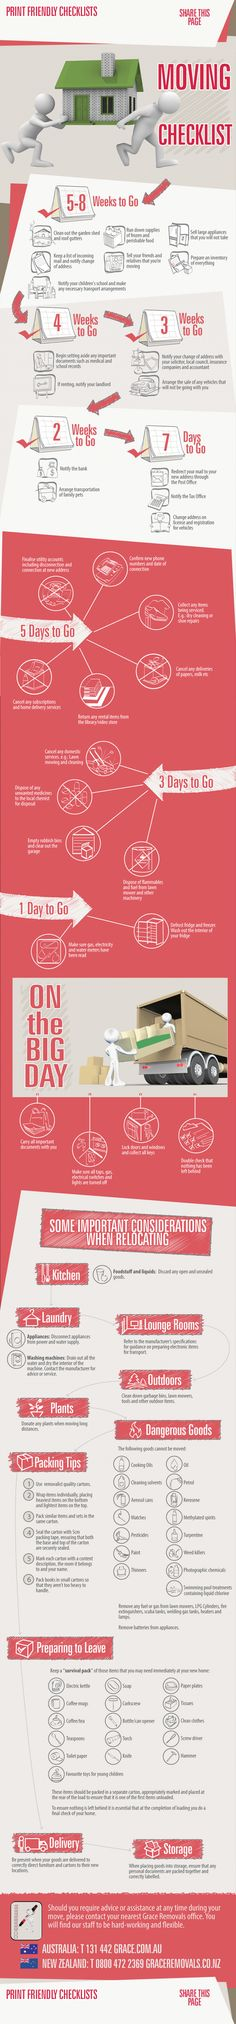 Moving Checklist [infographic]